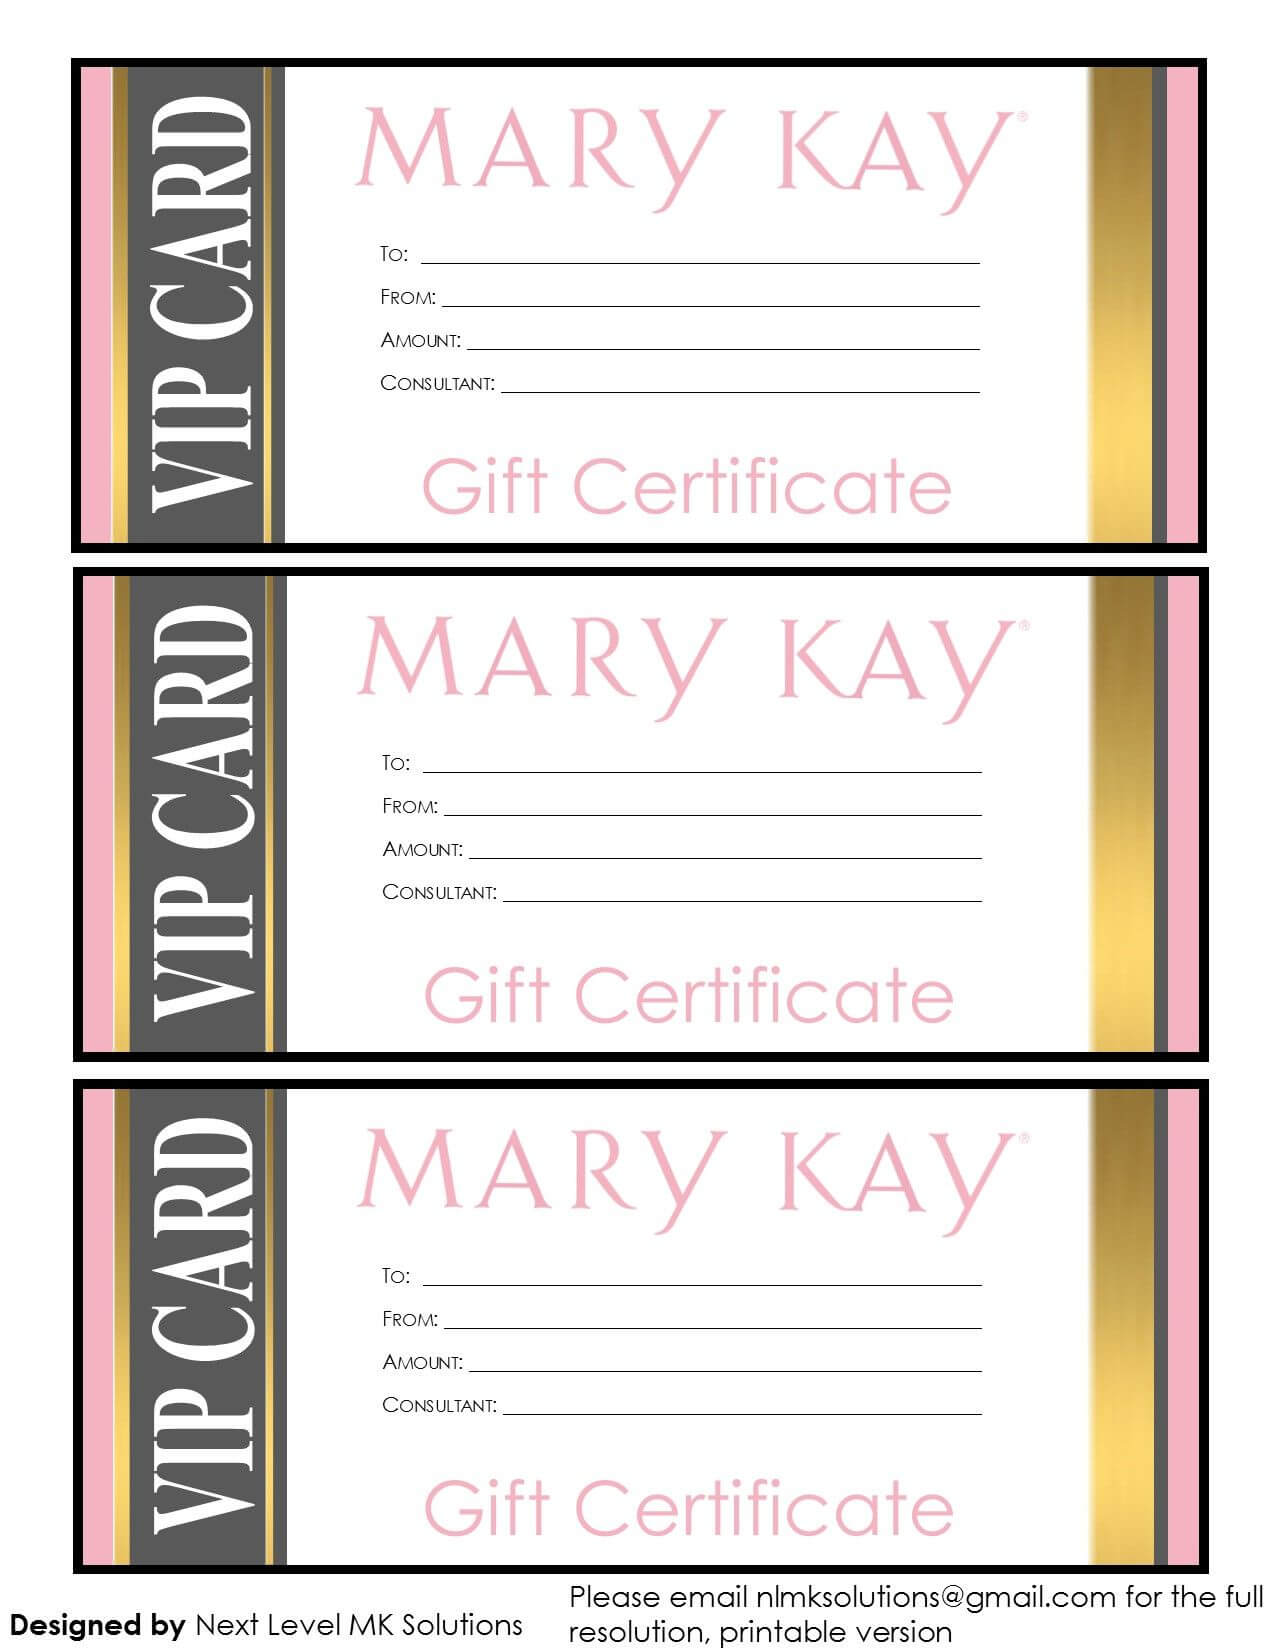 Mary Kay Gift Certificates - Please Email For The Full Pdf With Mary Kay Gift Certificate Template